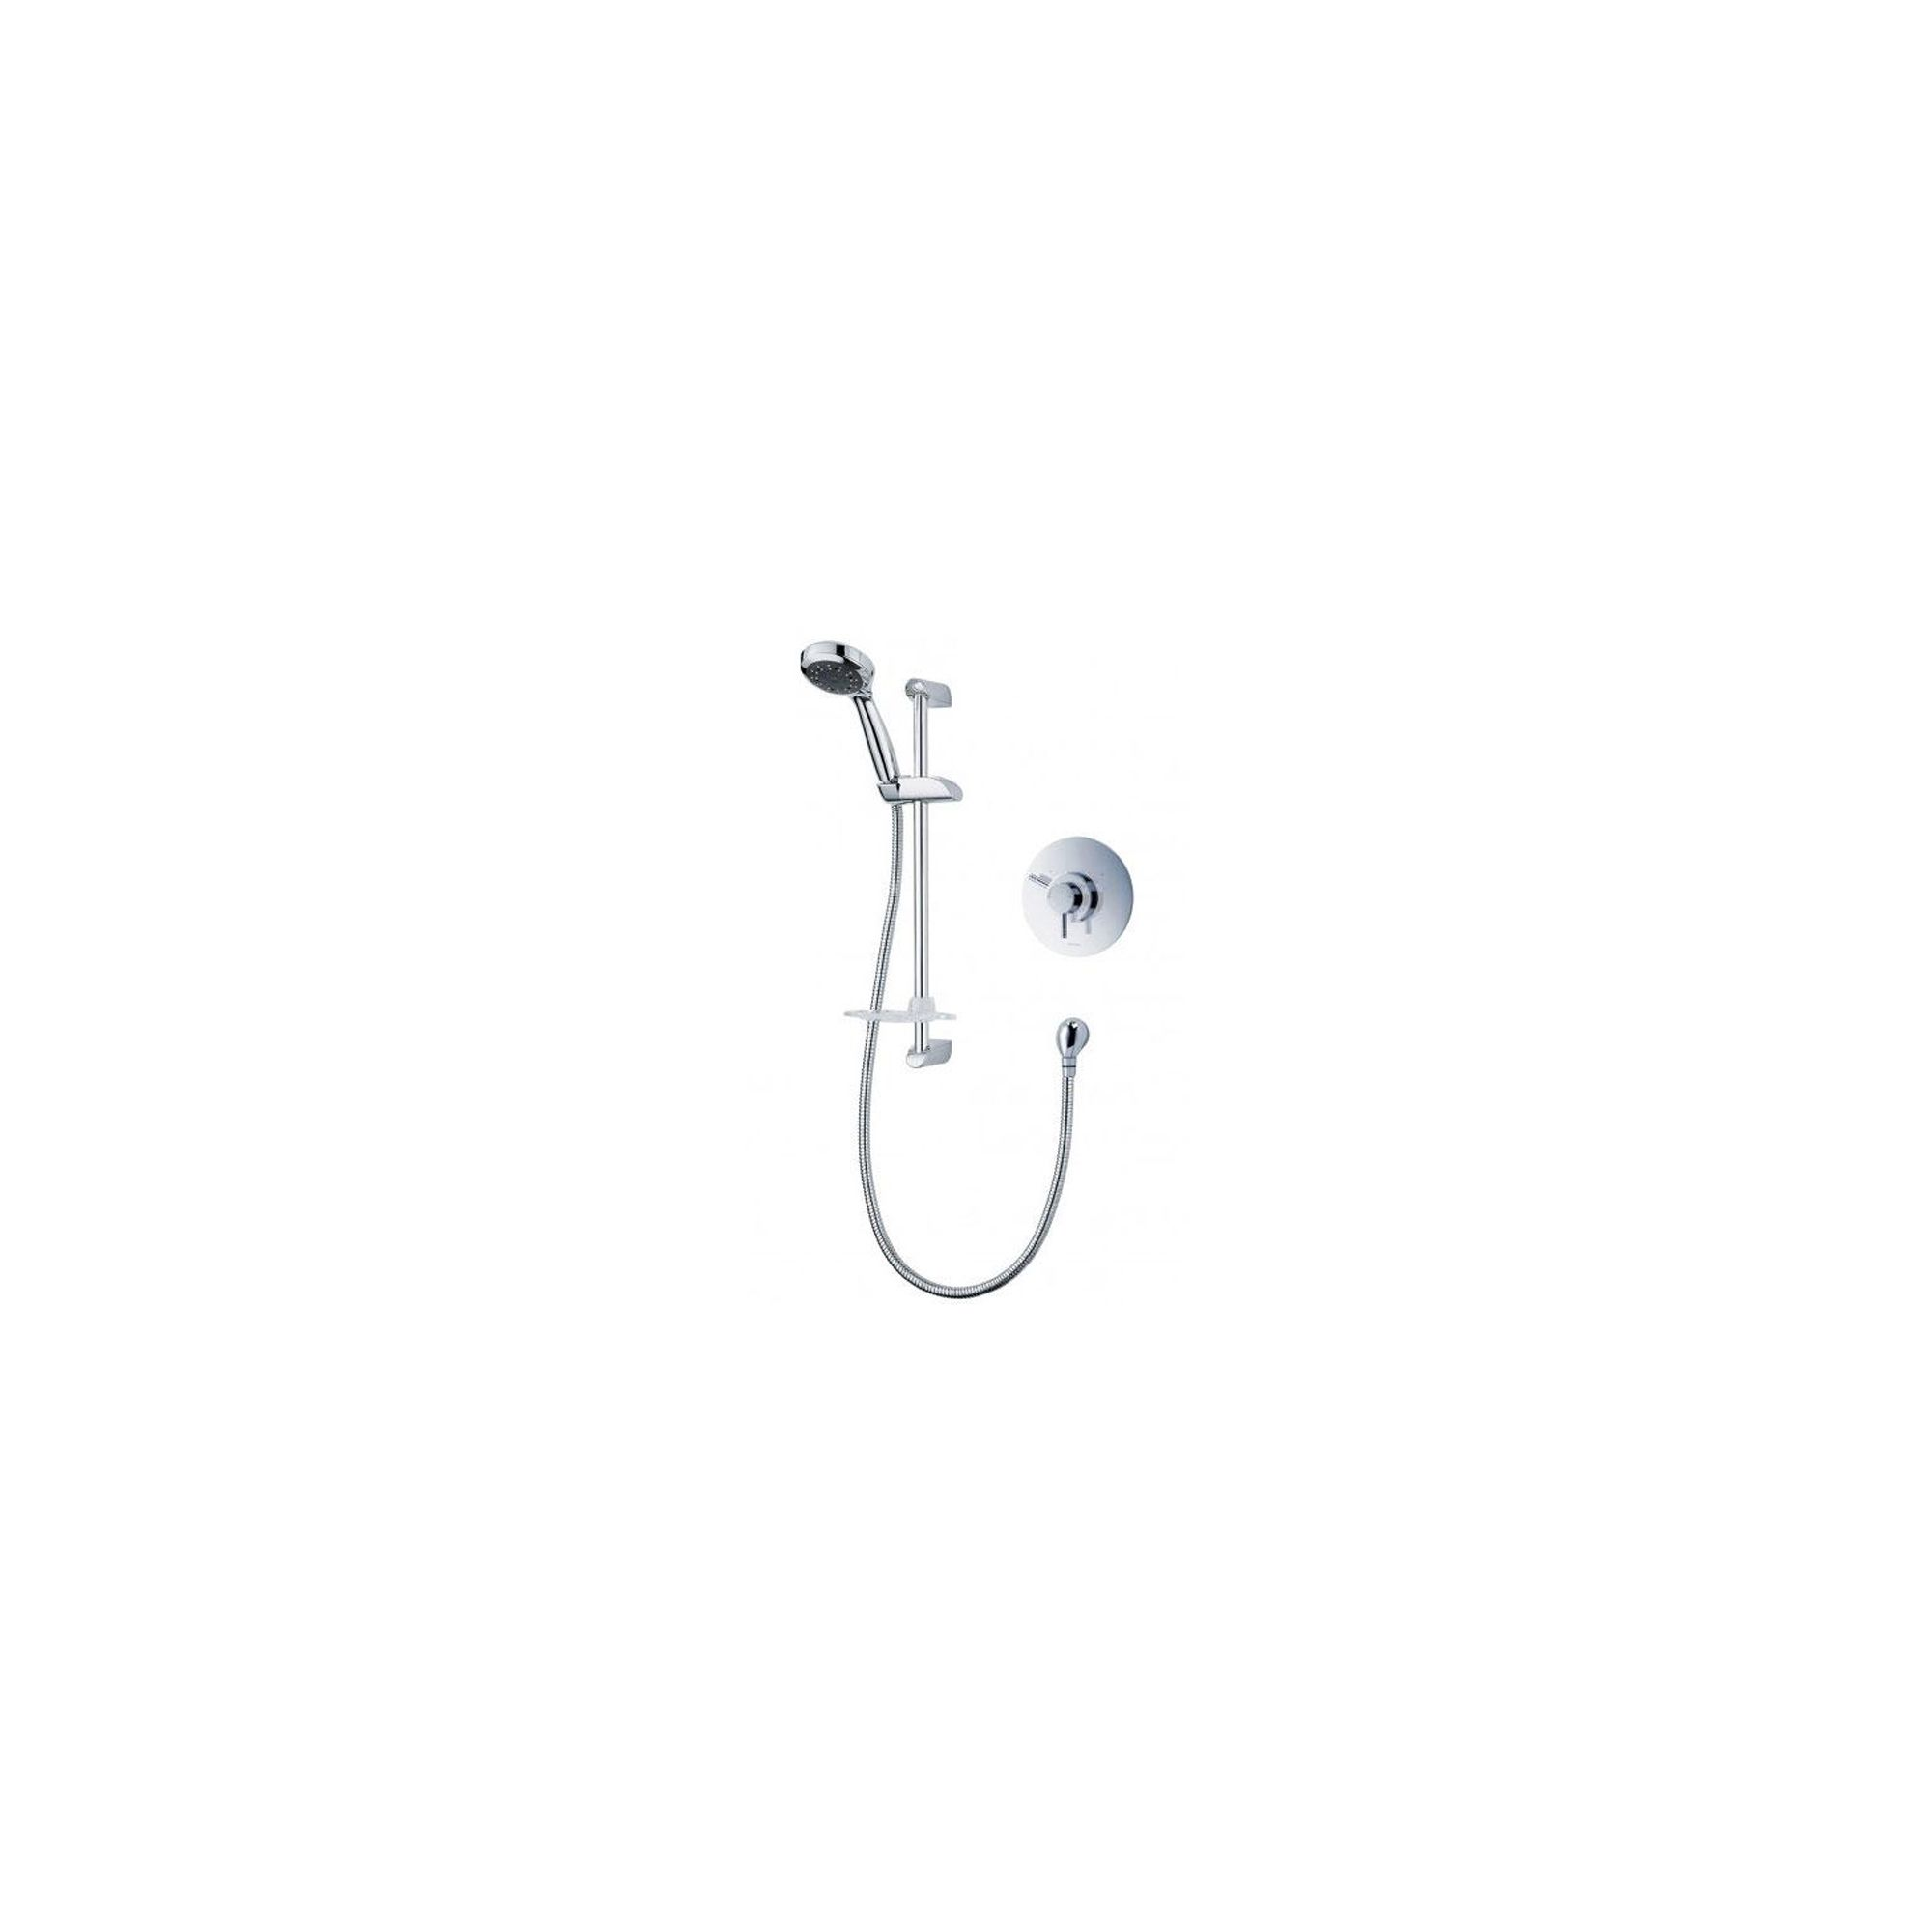 Triton Thames Built-In Thermostatic Mixer Chrome at Tesco Direct